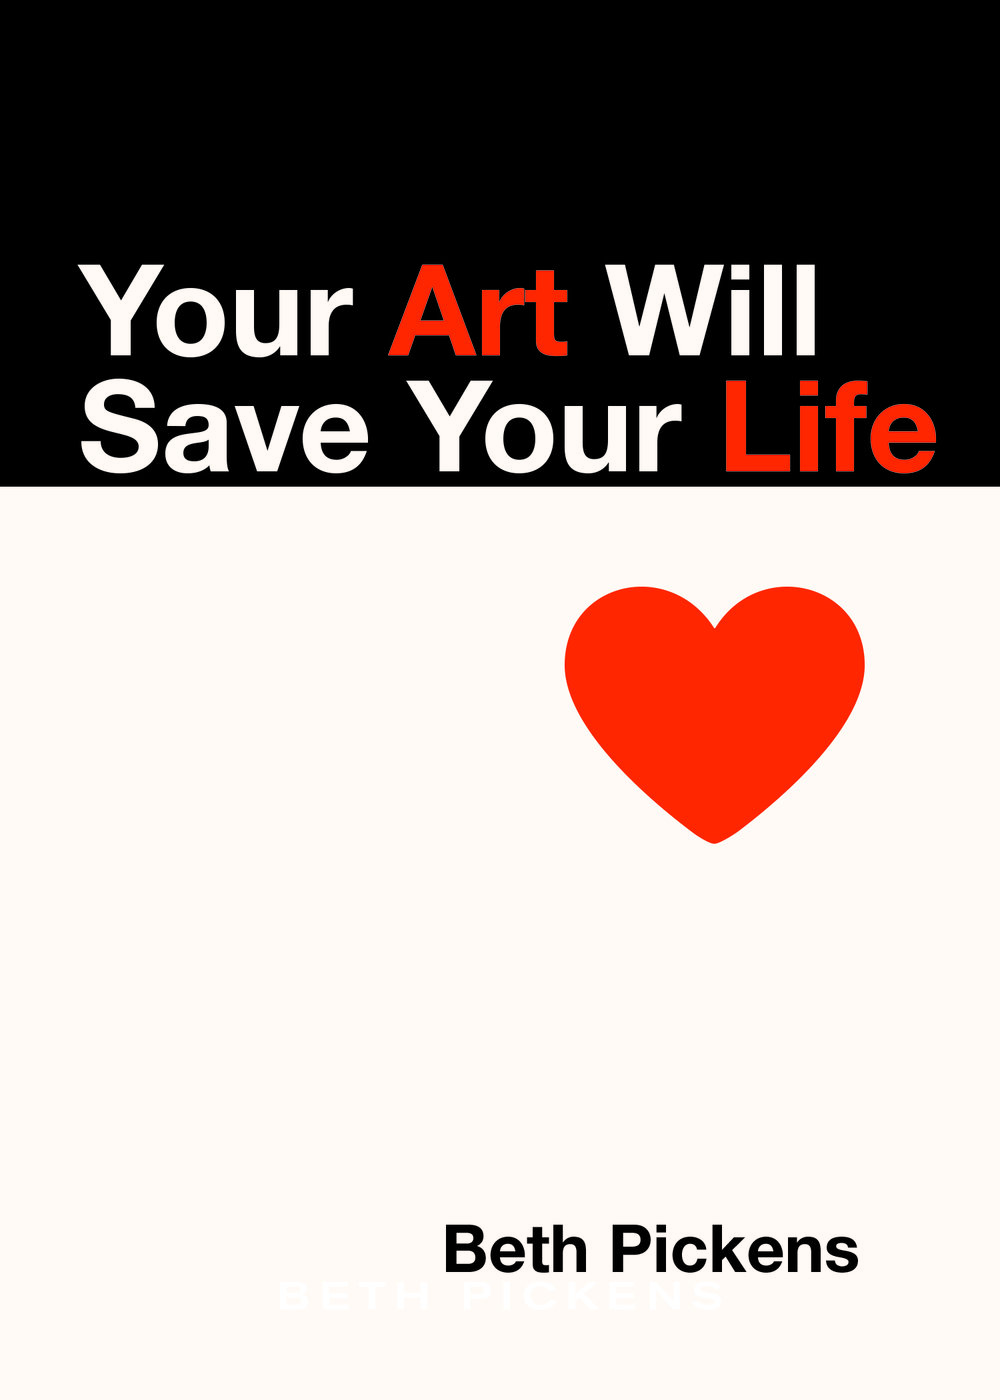 Your Art Will Save Your Life.jpg